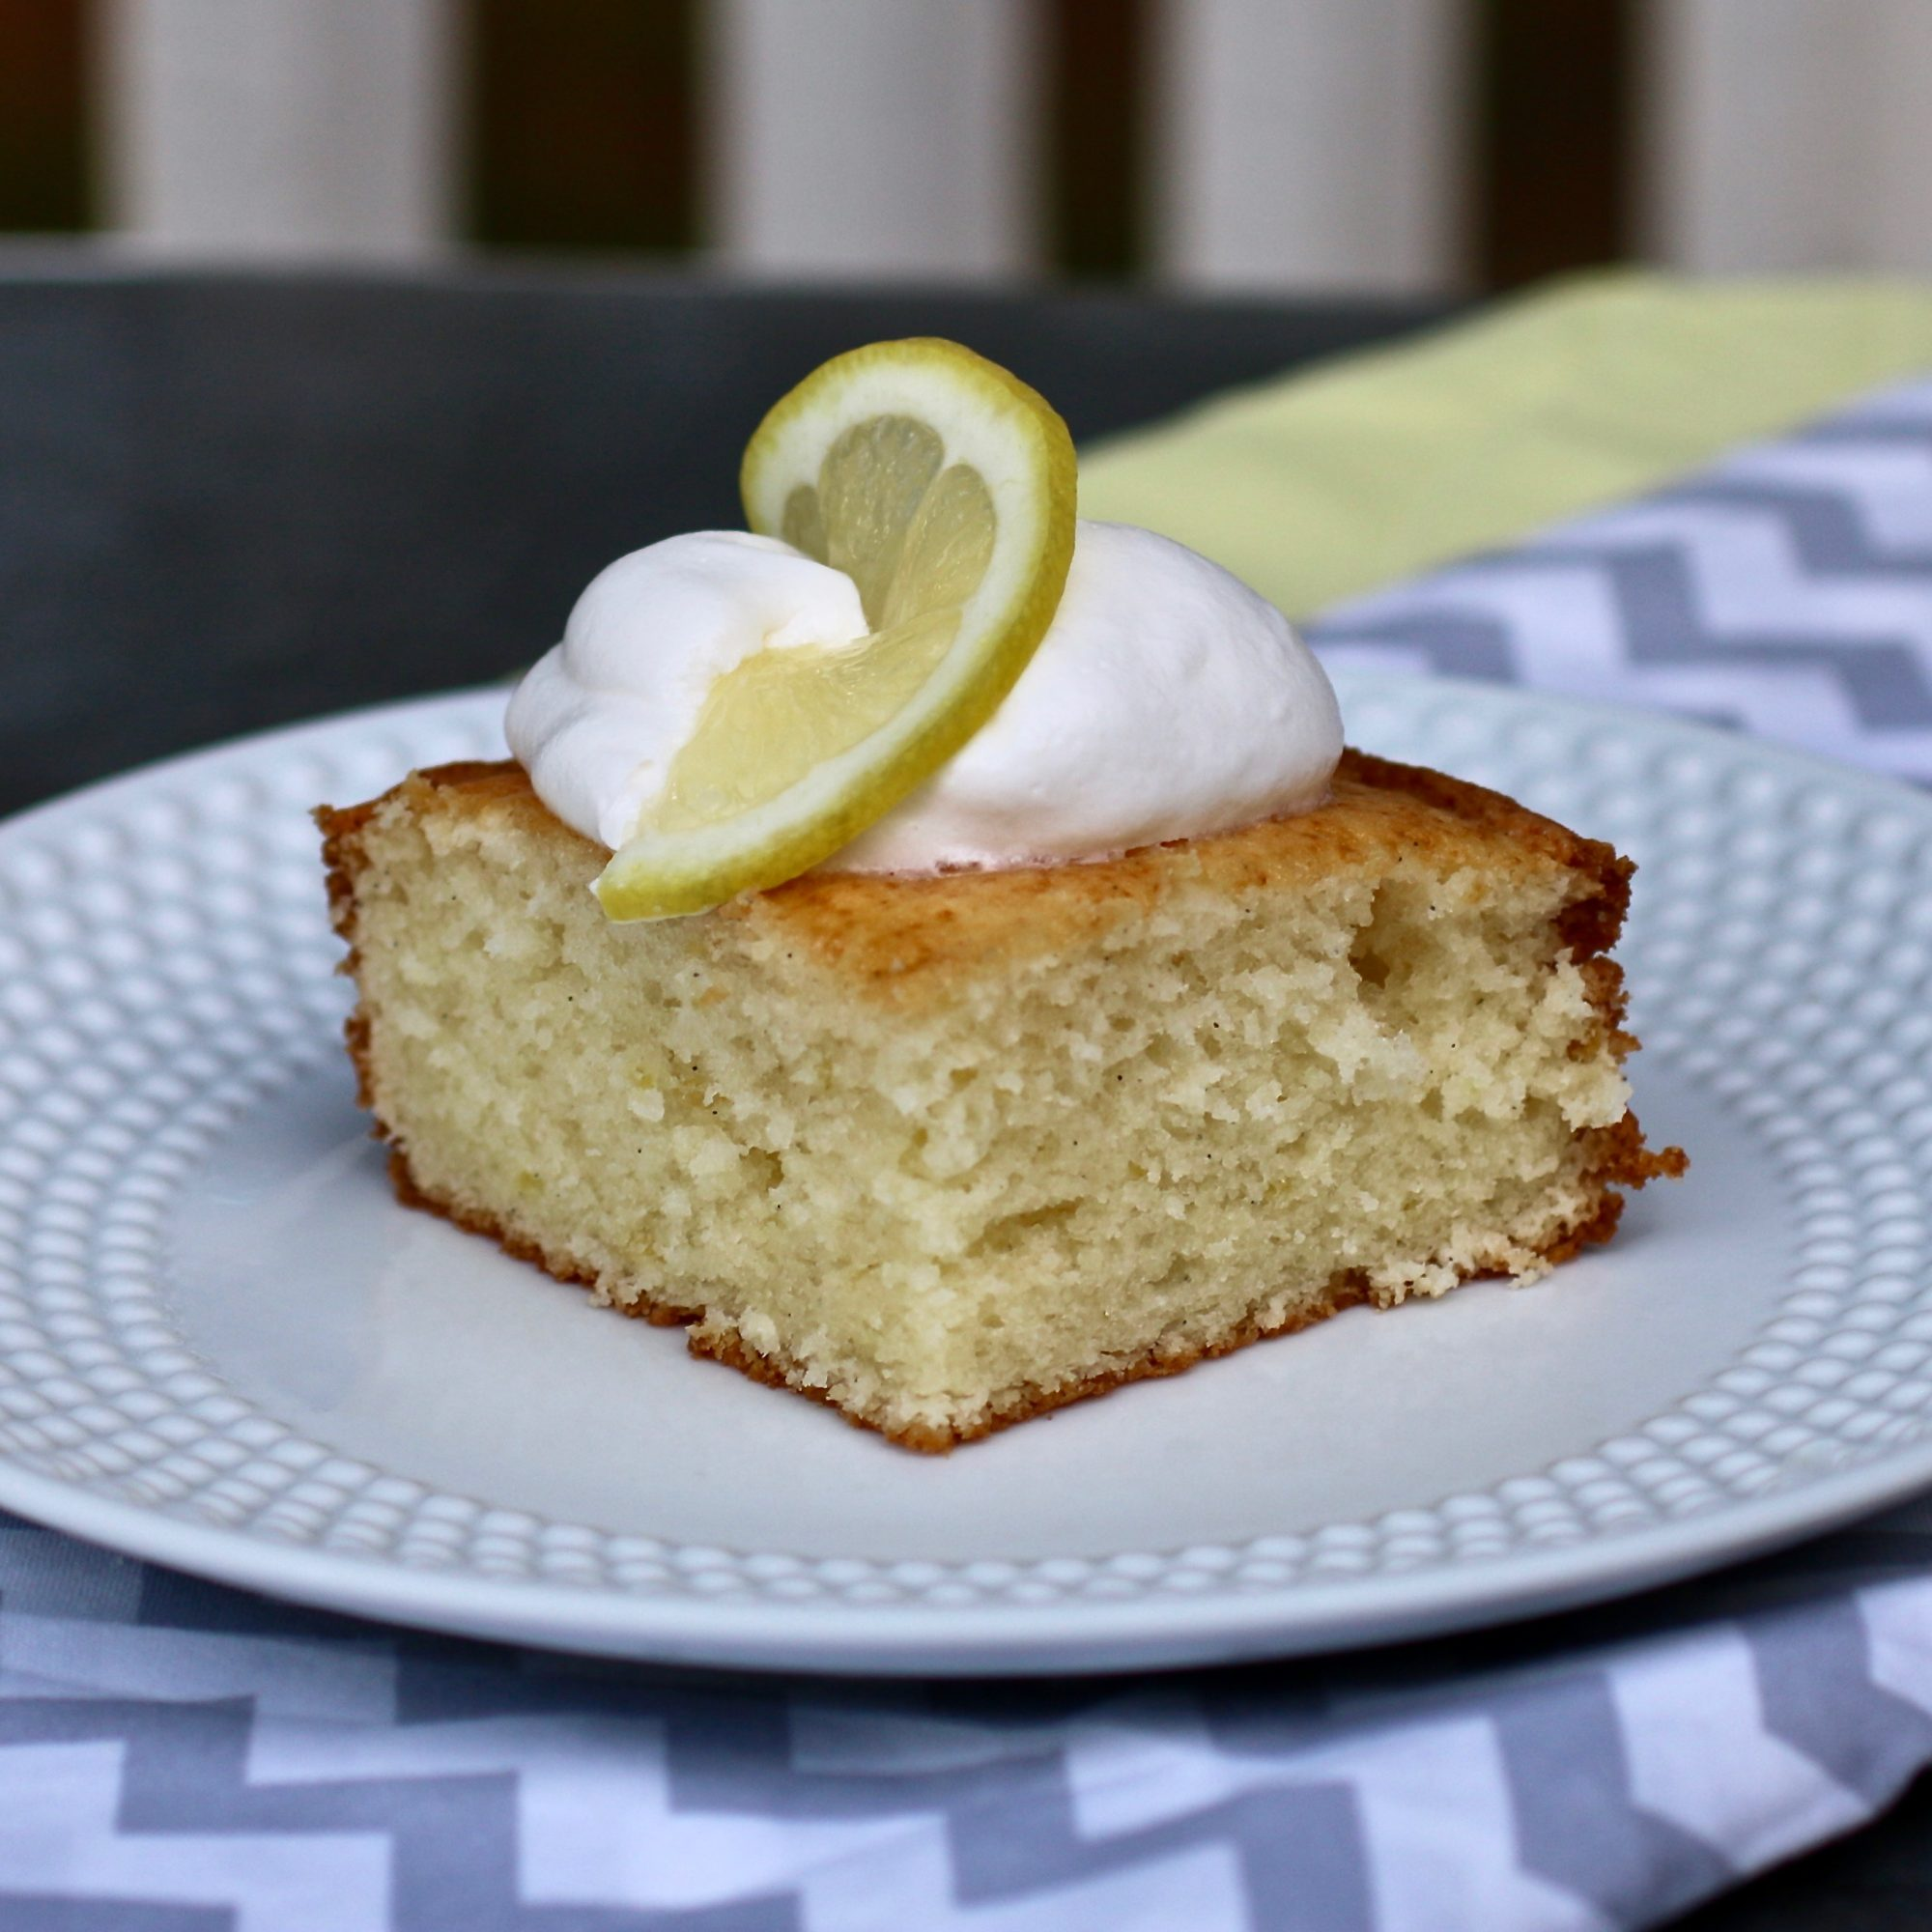 slice of lemon caked topped with whipped cream and lemon